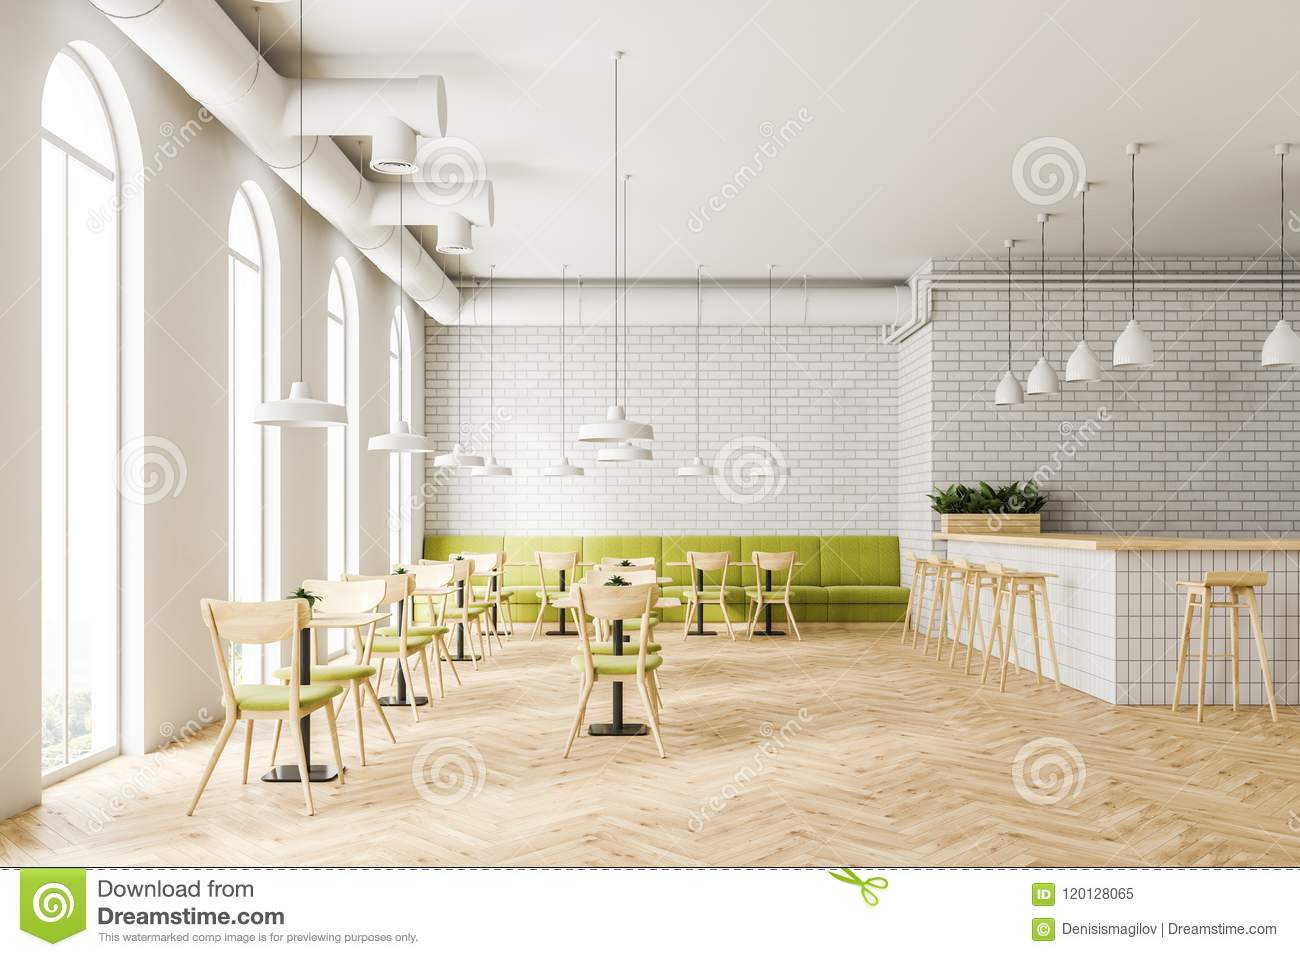 Industrial Style Cafe Interior Flower Beds Stock Illustration Illustration Of Lamp Glass 120128065